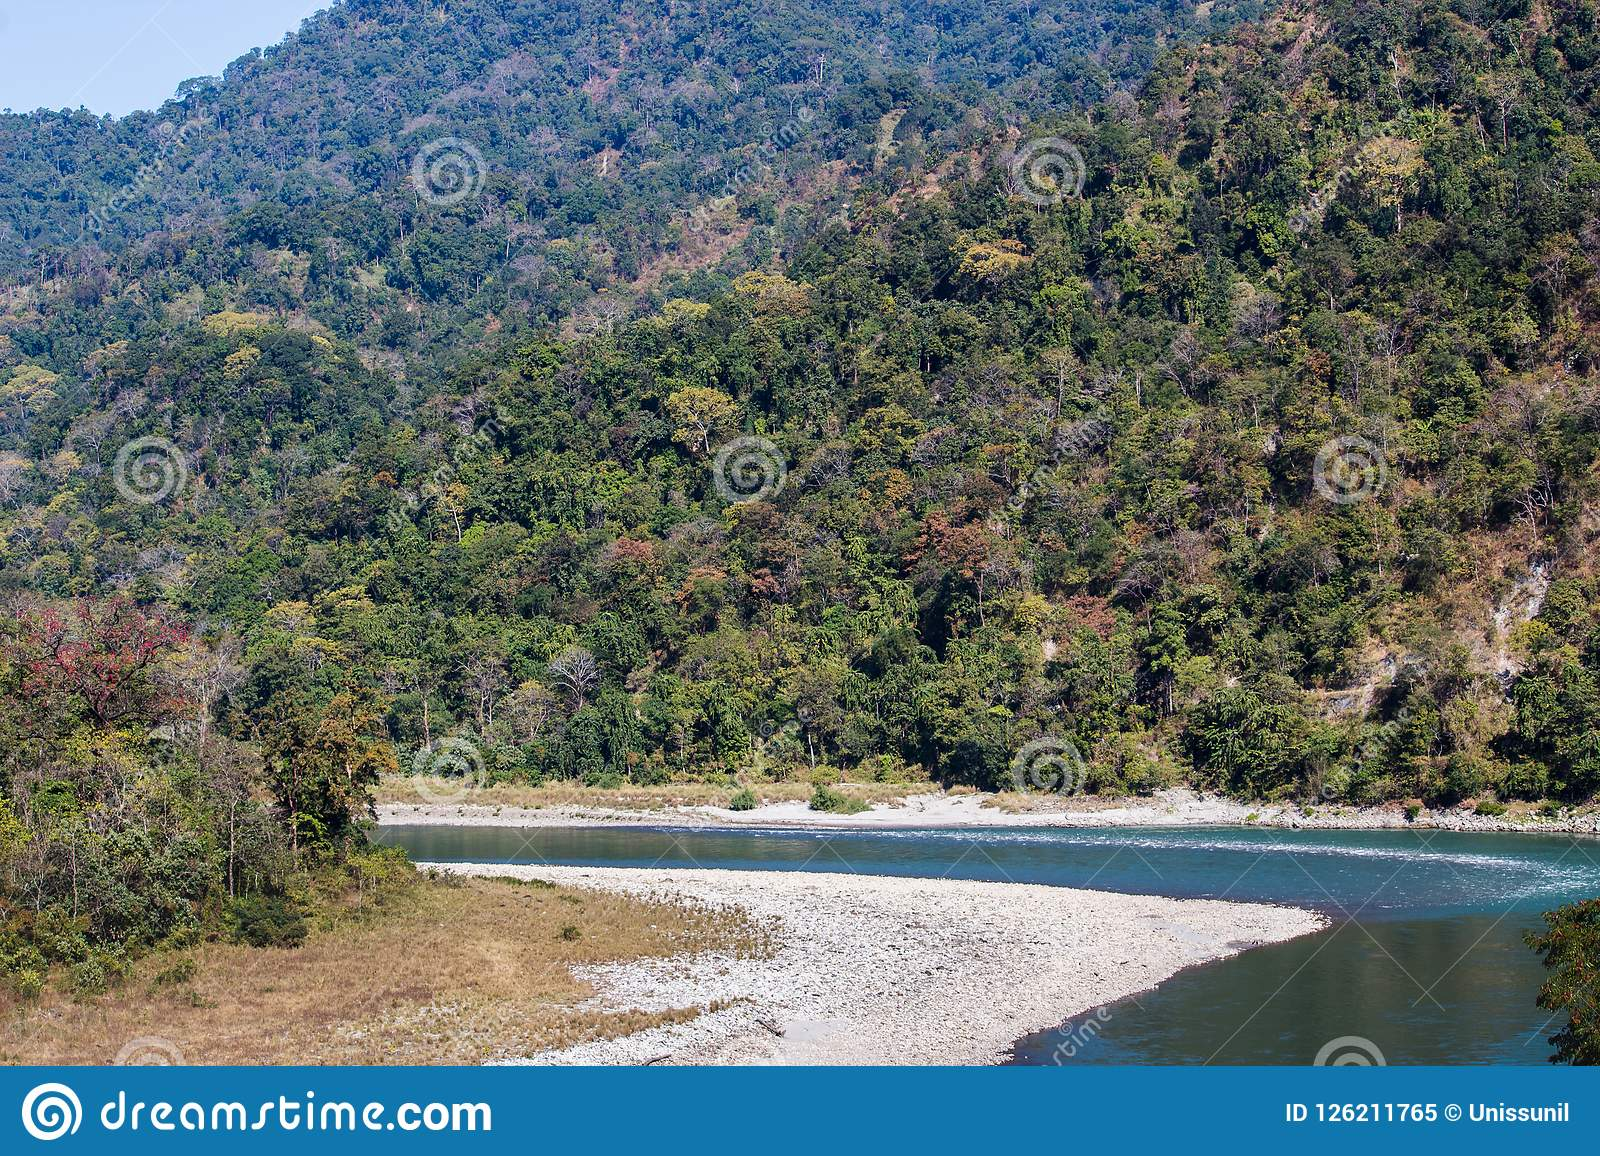 River flow between hills, Manas National Park, Assam, India